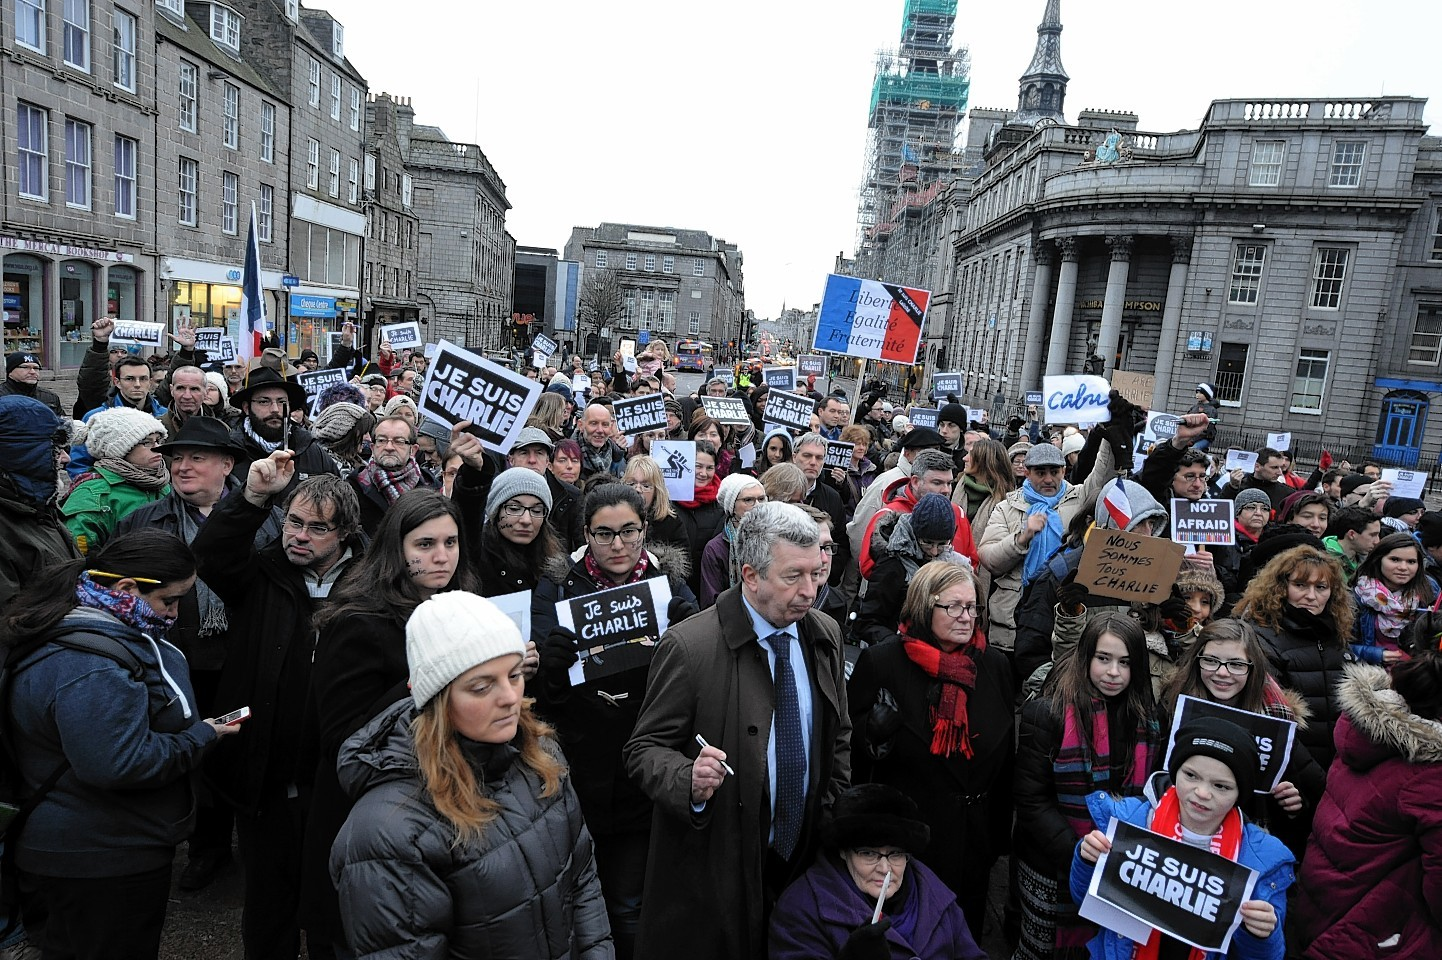 Vigil For Charlie Hebdo And Defence Of Freedom at the Castlegate to protest against the terrorist attacks in Paris and to stand-up for a free press, free speech, and political satire.